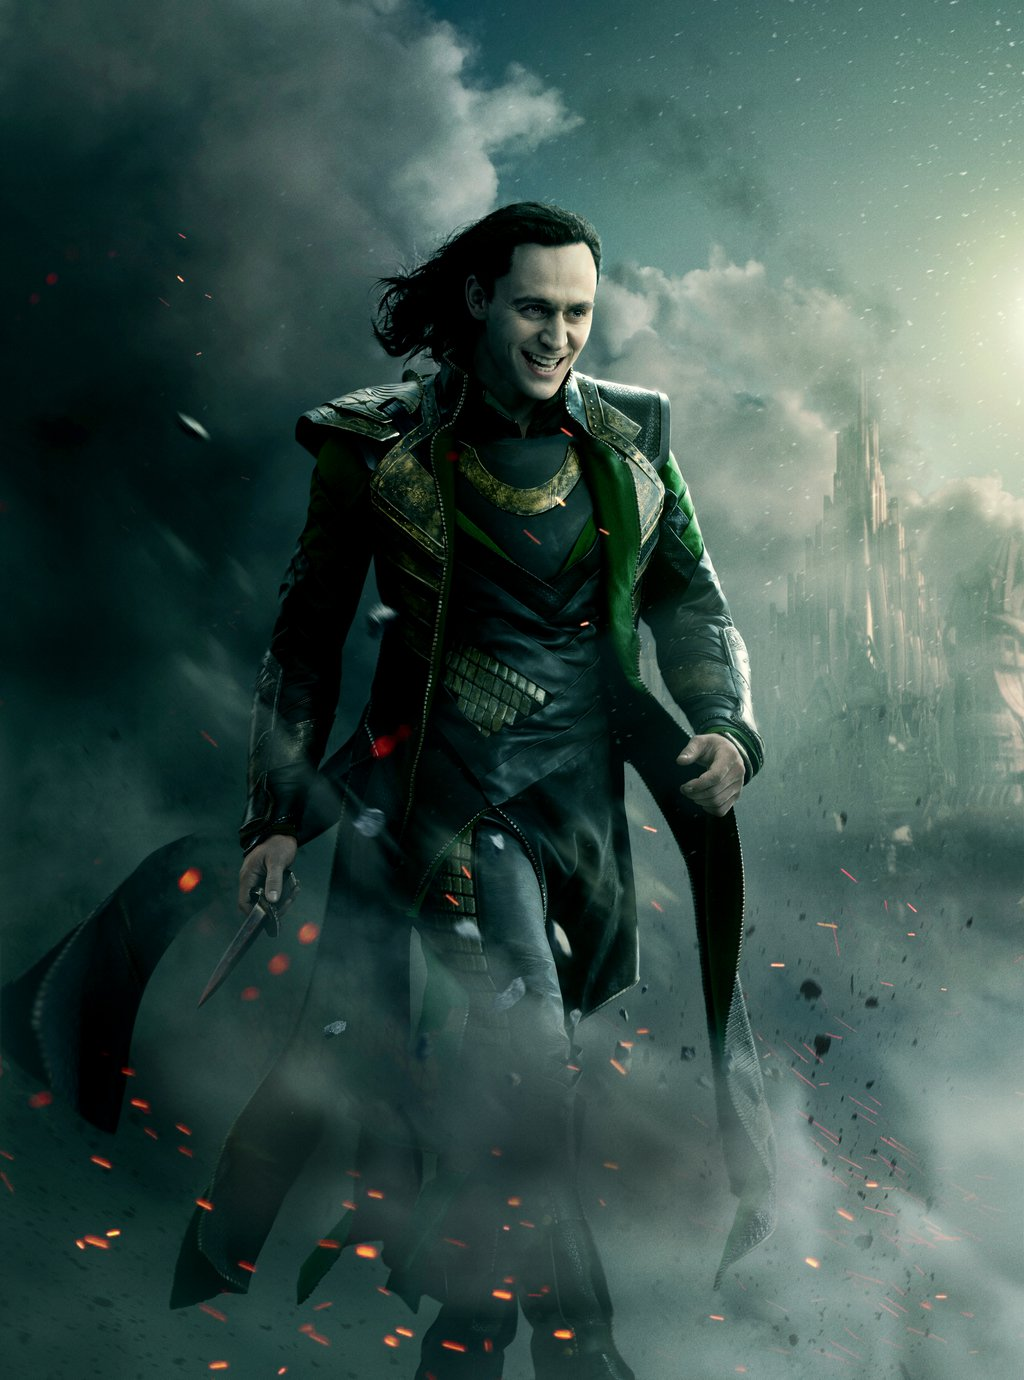 image - thor the dark world - loki - textless poster 2 | disney